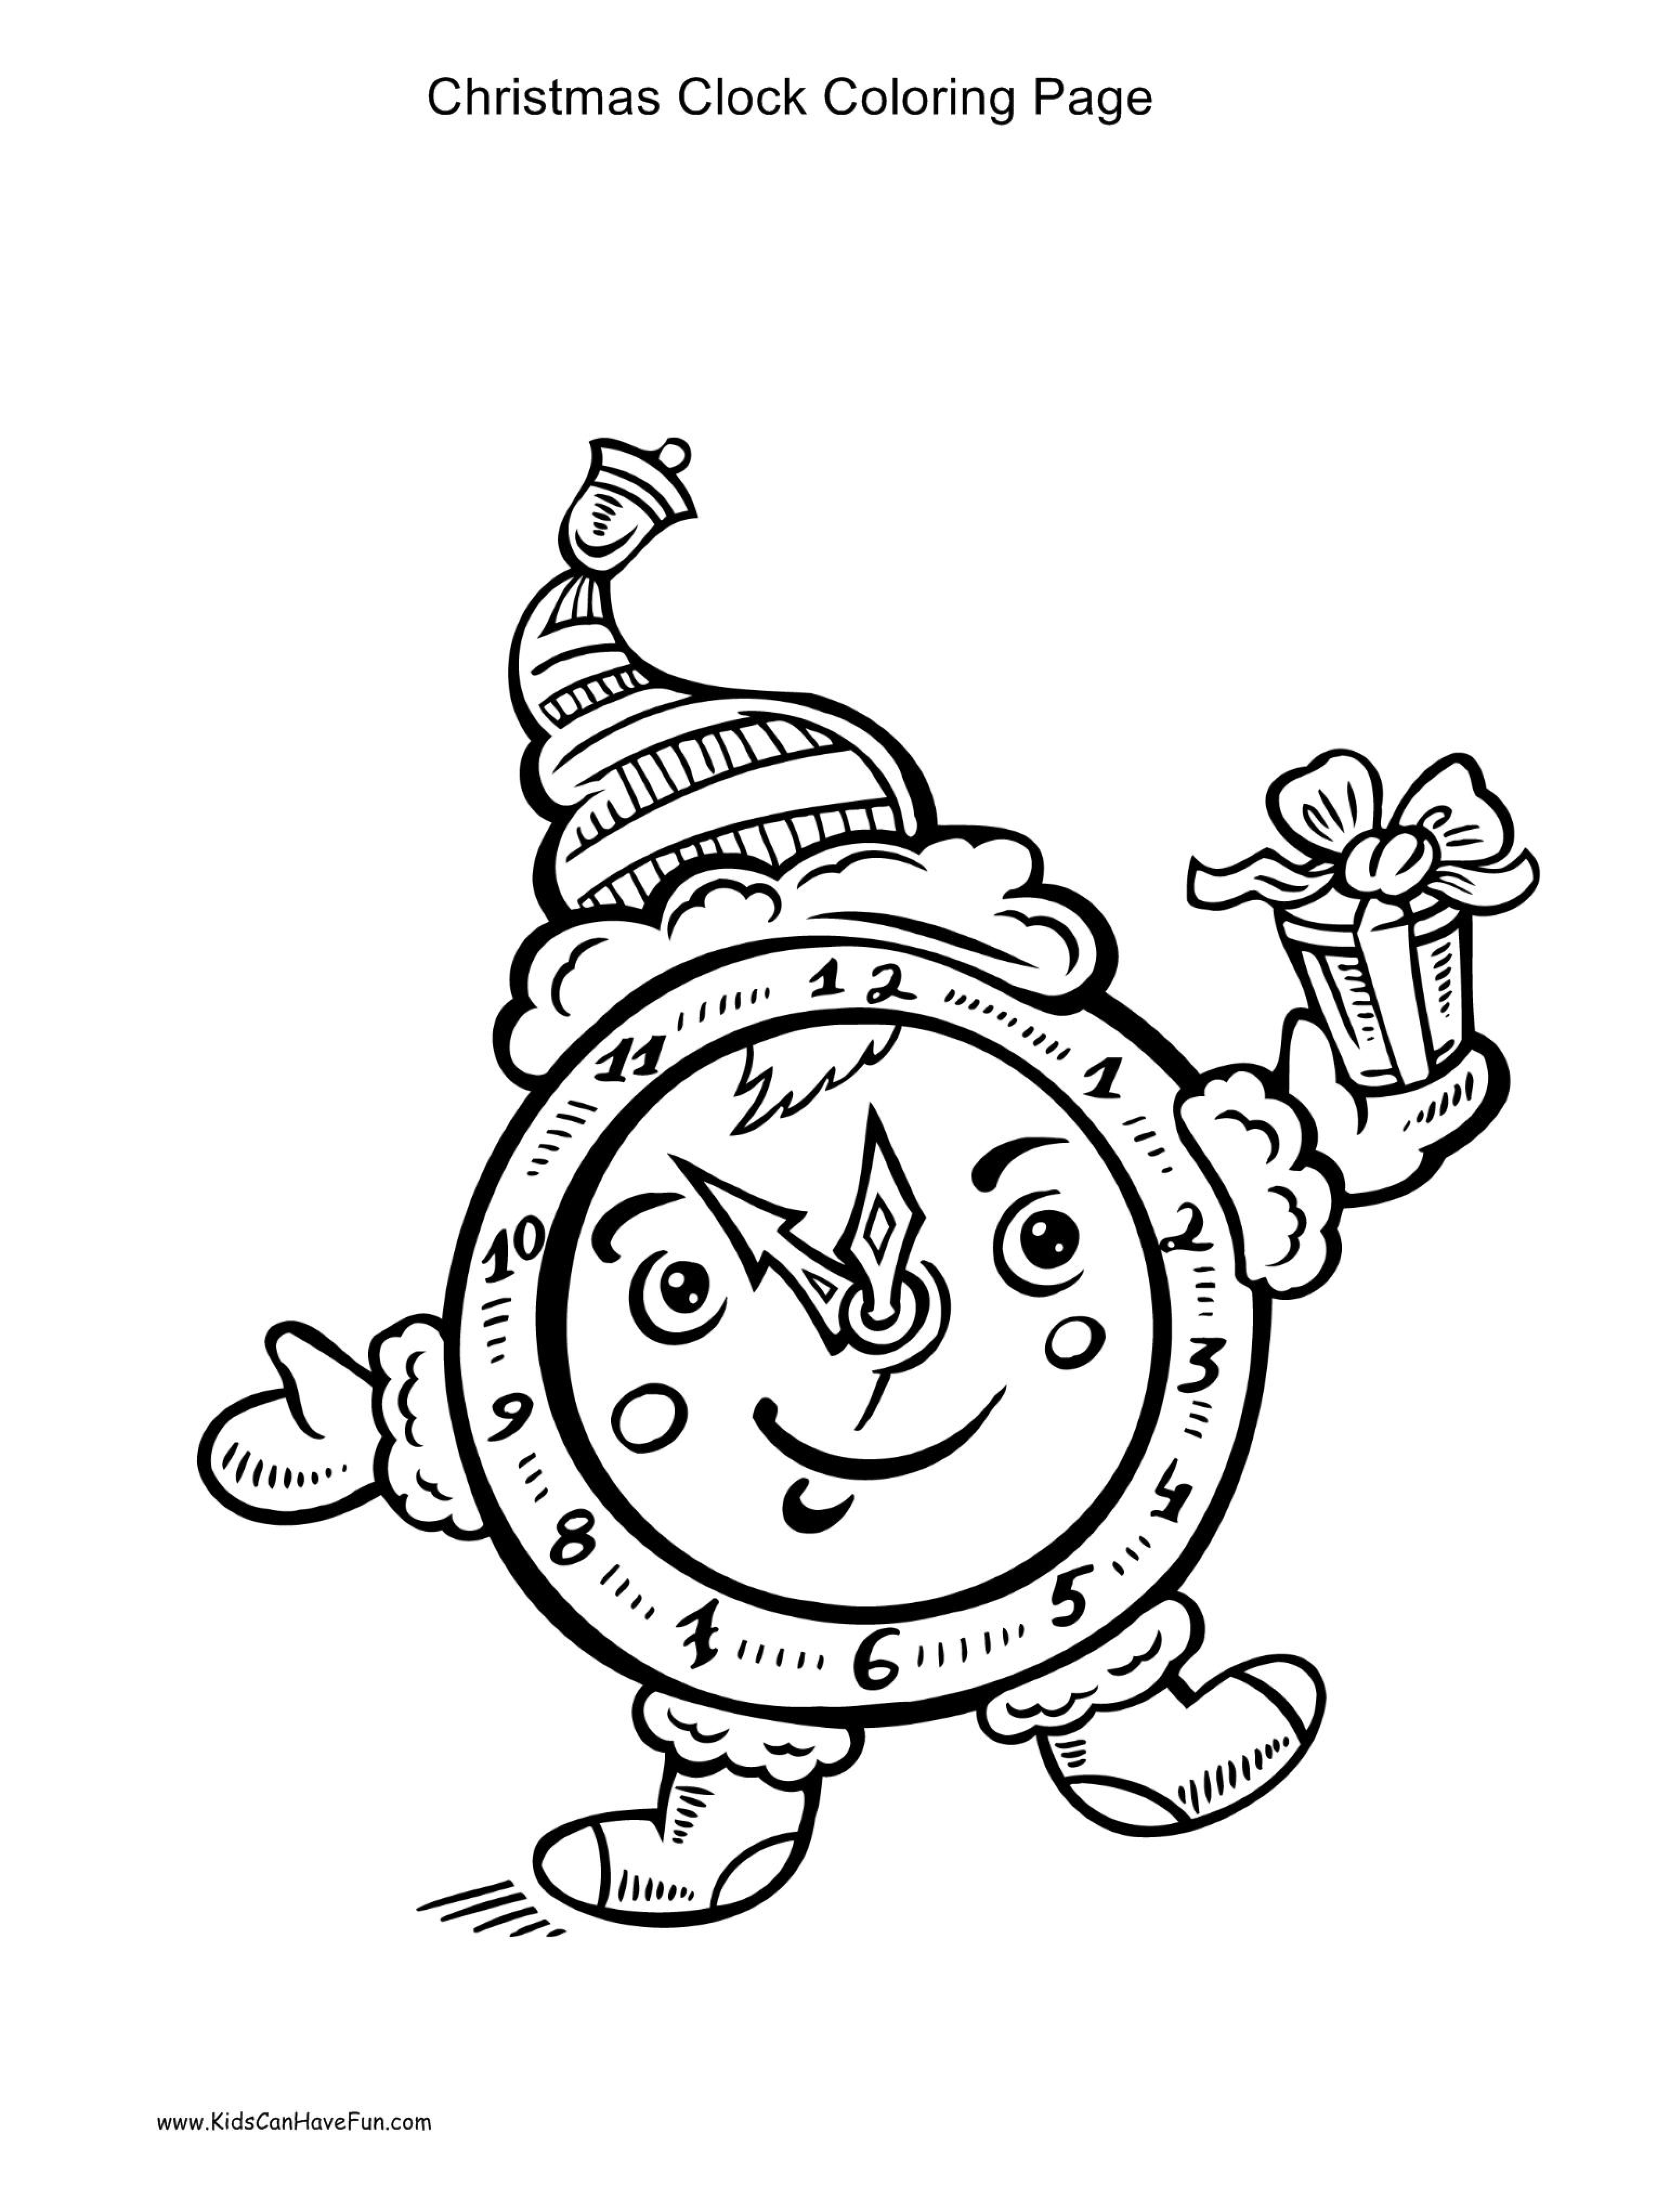 Christmas Coloring Pages Ws With Alphabet Htm New Clock Page Juan